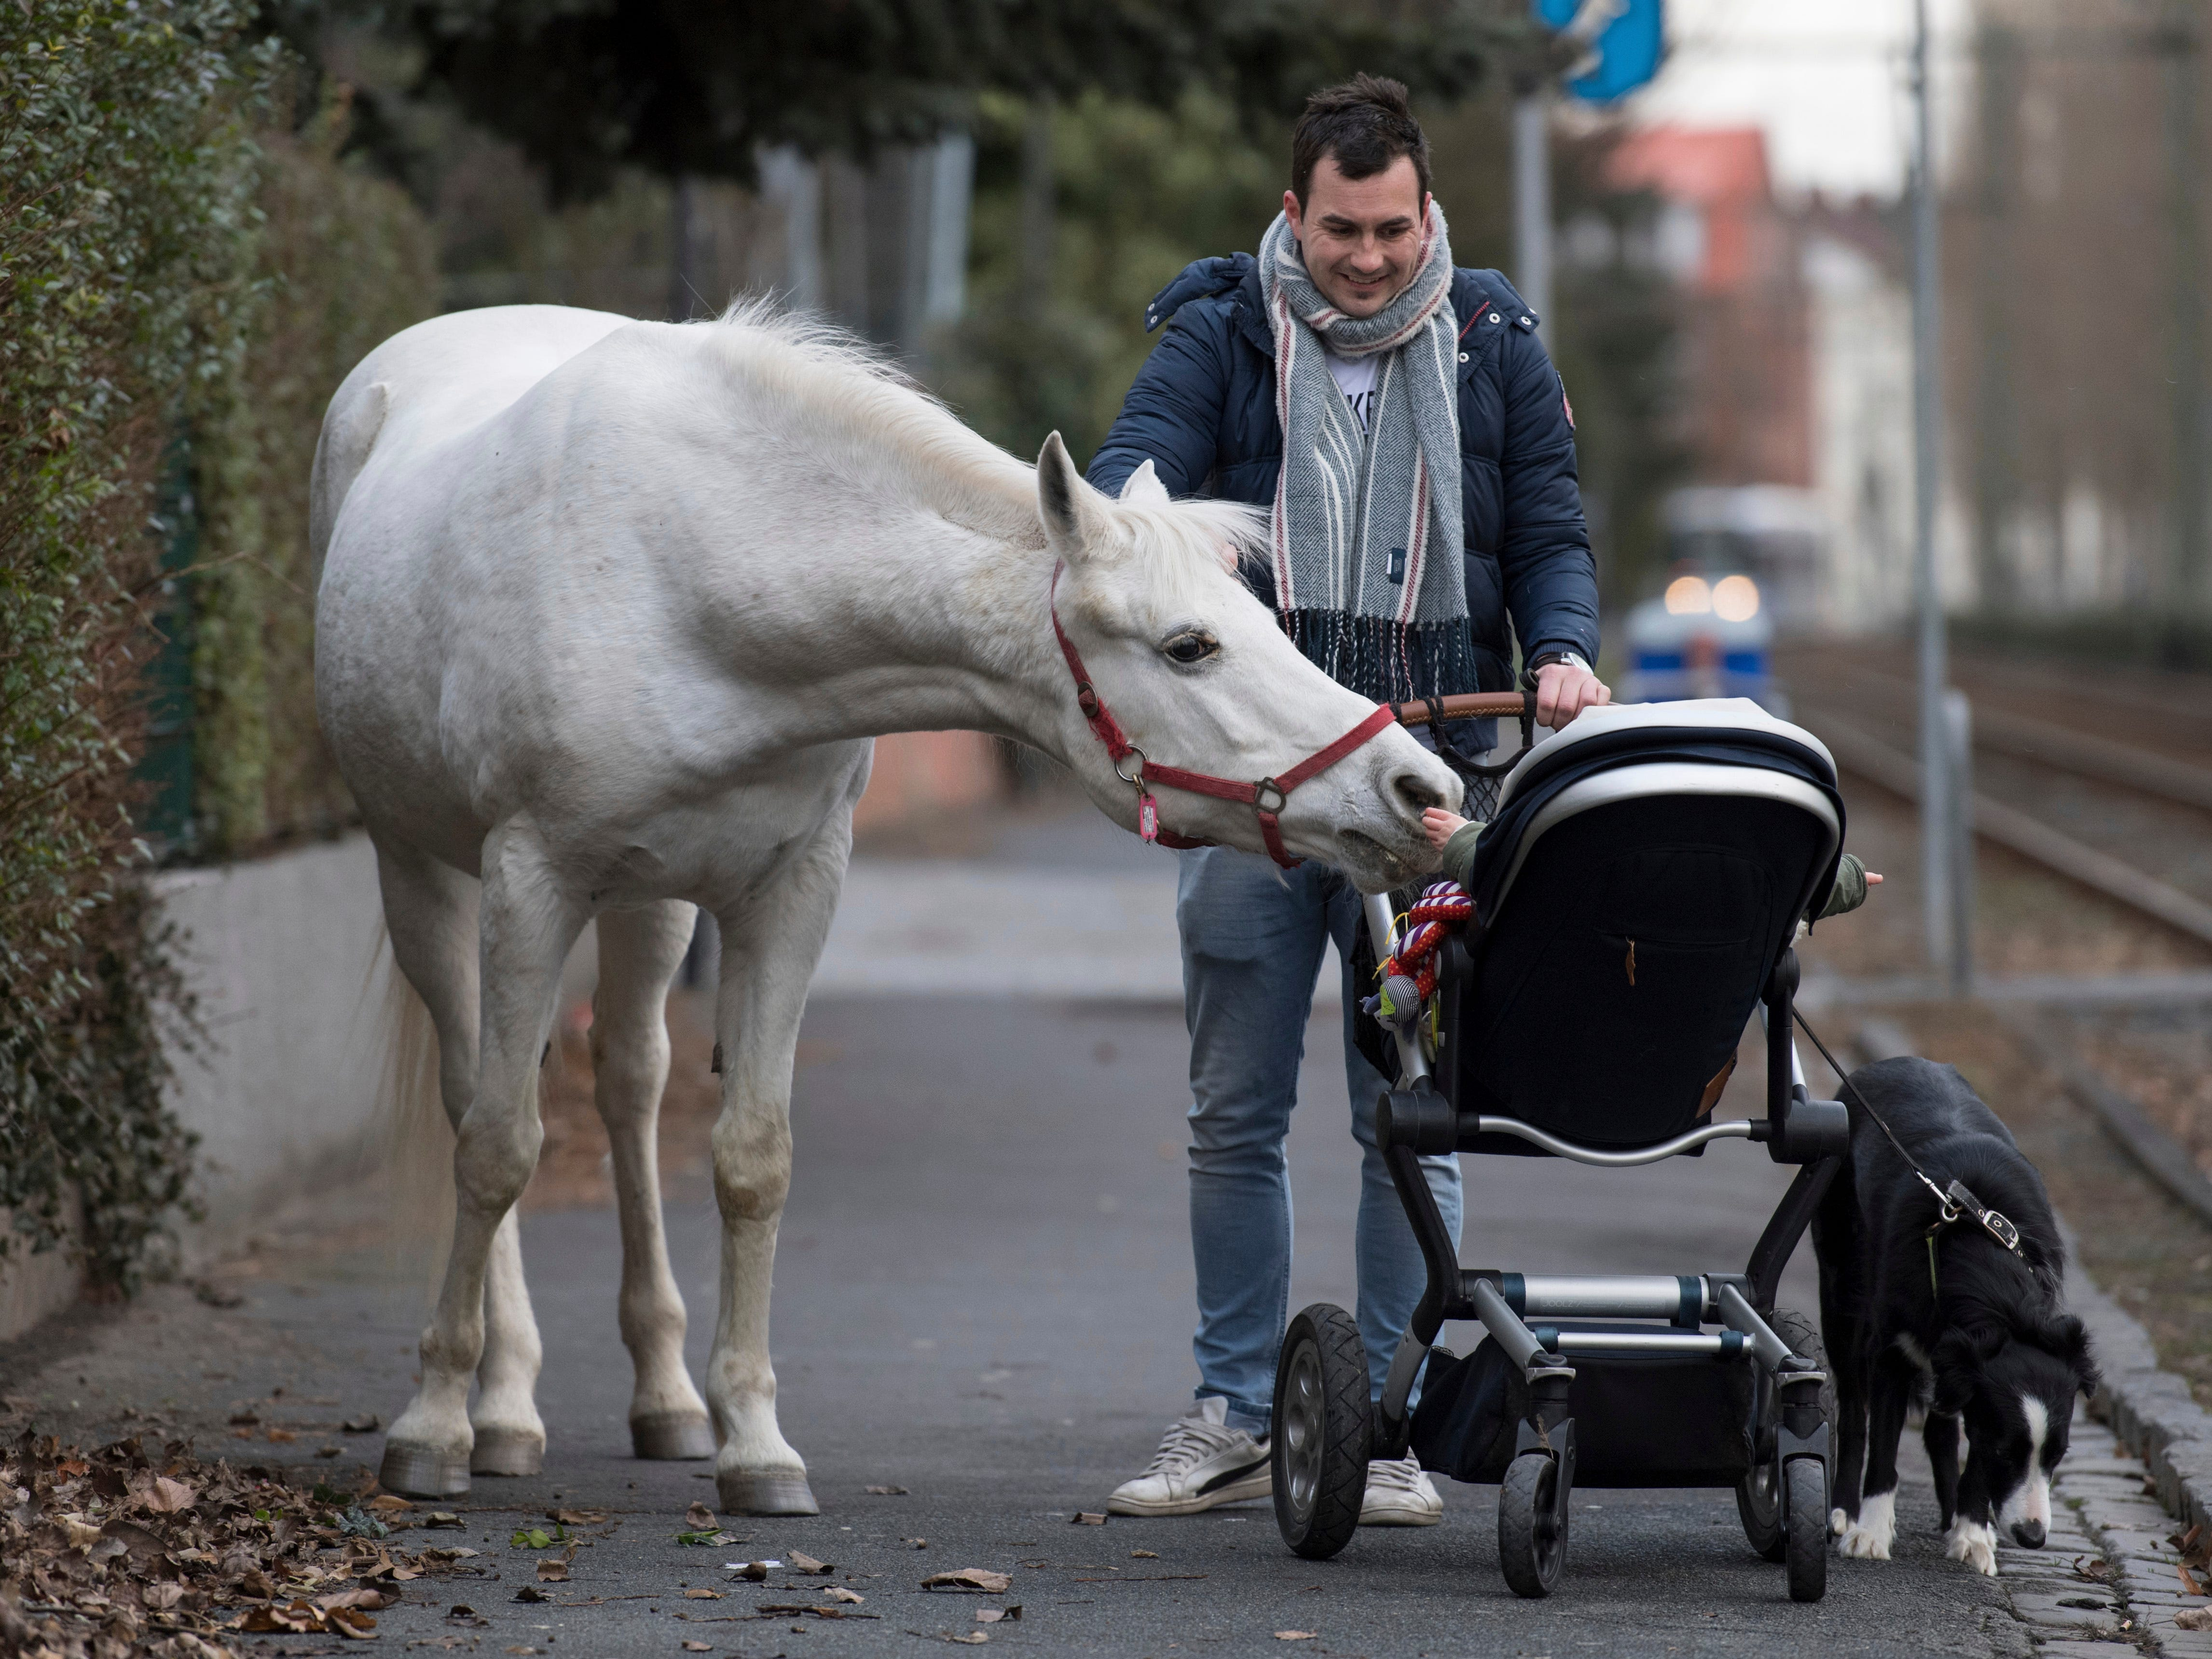 Arabian mare Jenny, 22, walks home from her daily tour of the surroundings in Frankfurt, Germany, March 8, 2019. Jenny's owner opens the stable door for the horse every morning and the animal decides for itself where she wants to spend the day.